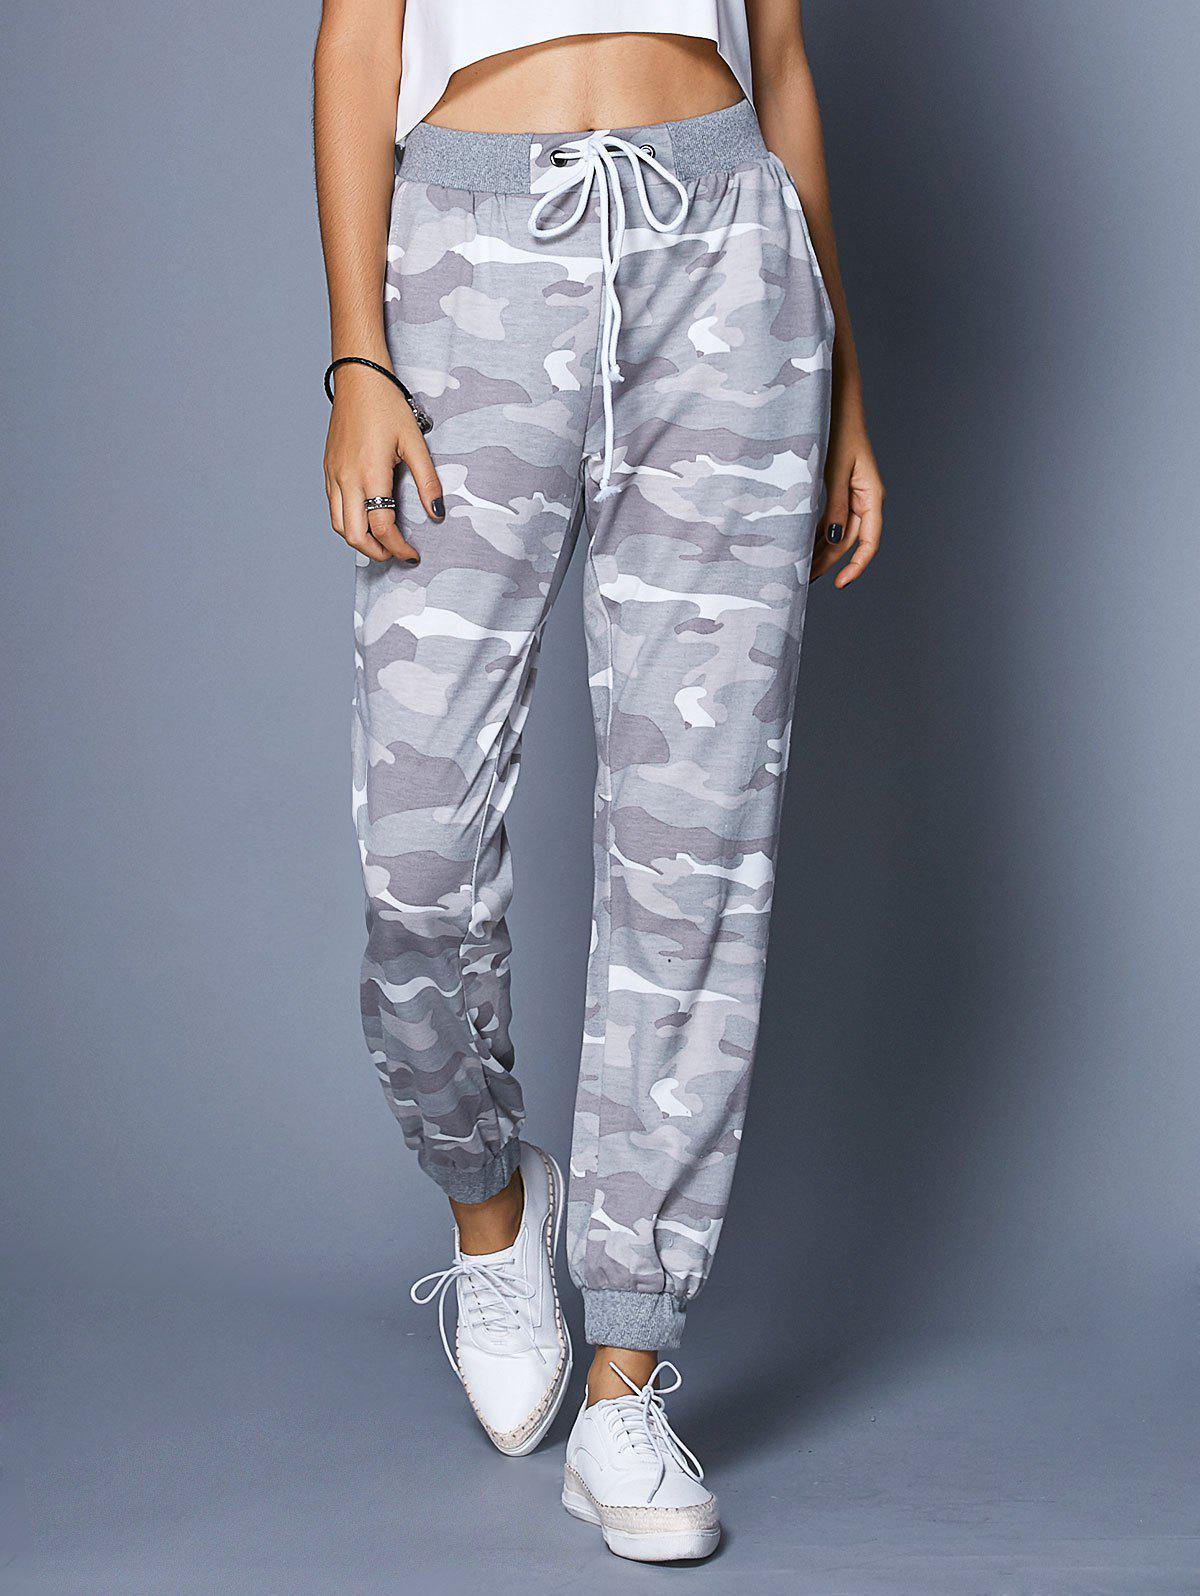 Chic High-Waisted Pocket Design Camo Print Women's Pants - COLORMIX L